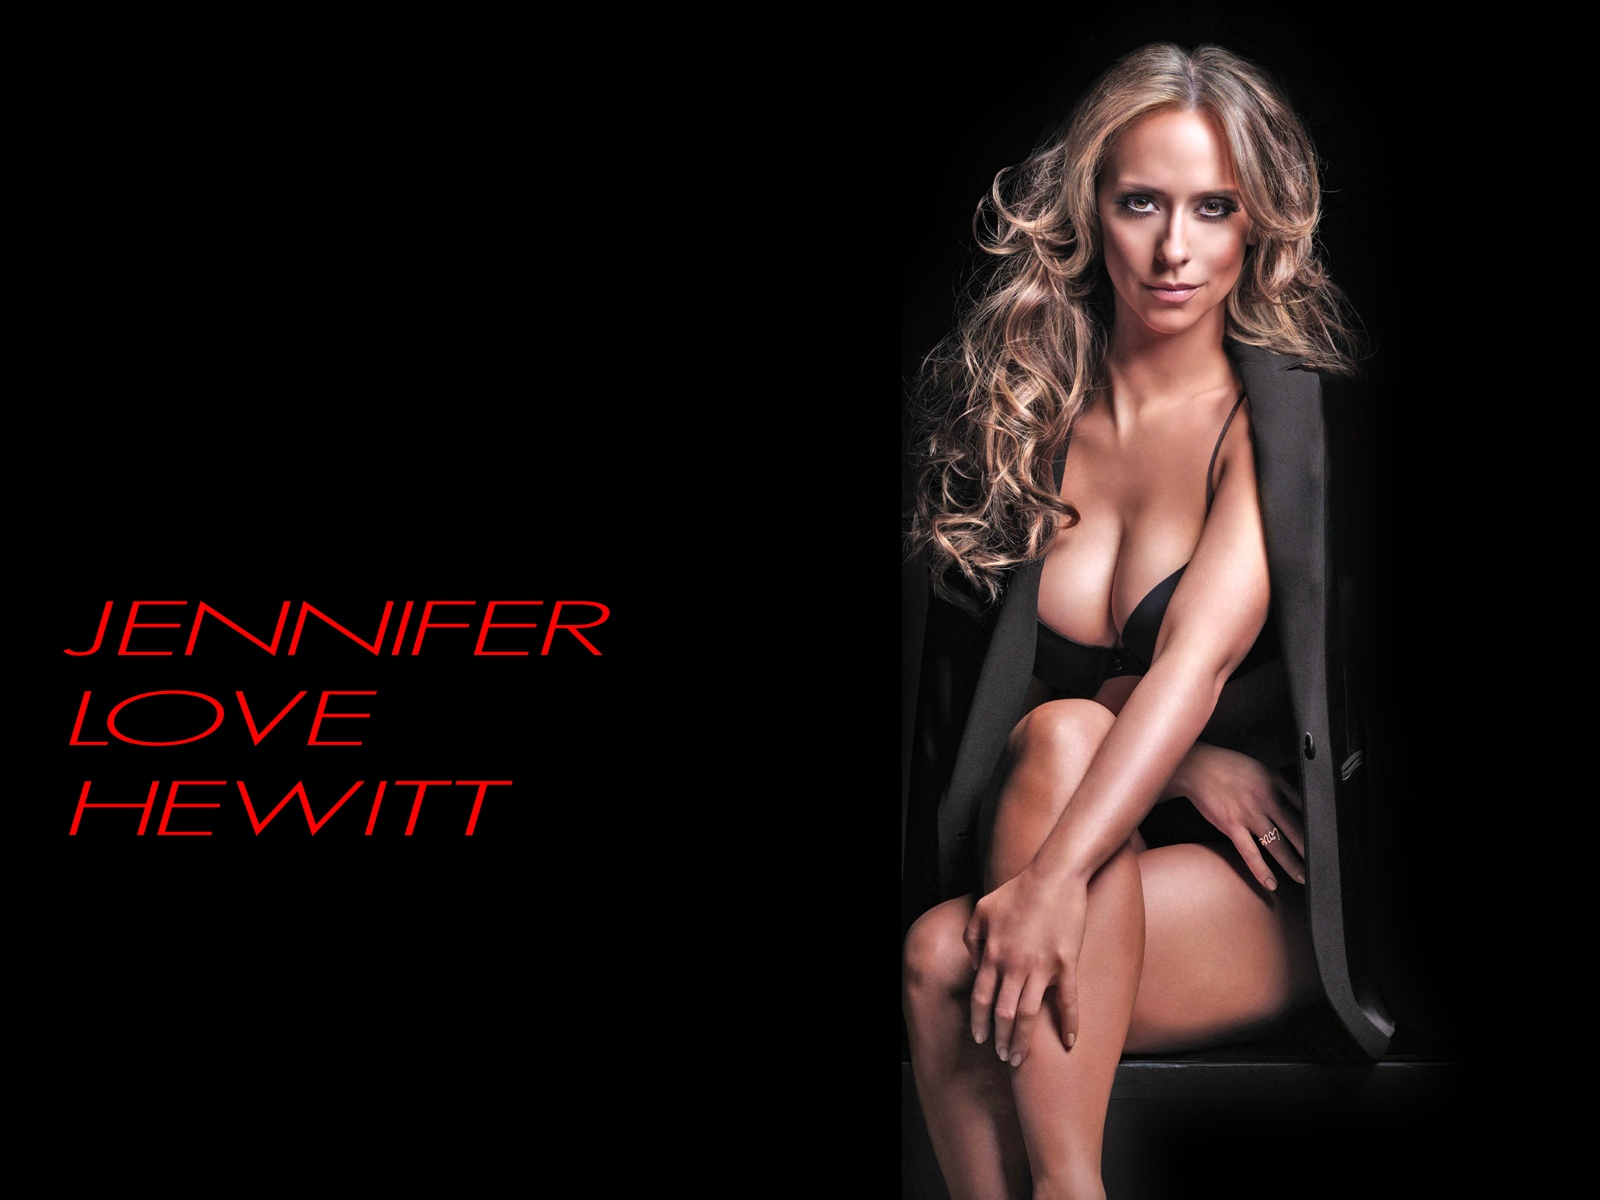 Hot Love Wallpaper In Hd : Jennifer Love Hewitt Hot and Sexy Wallpapers 1600 and 1920-02 - Gotceleb